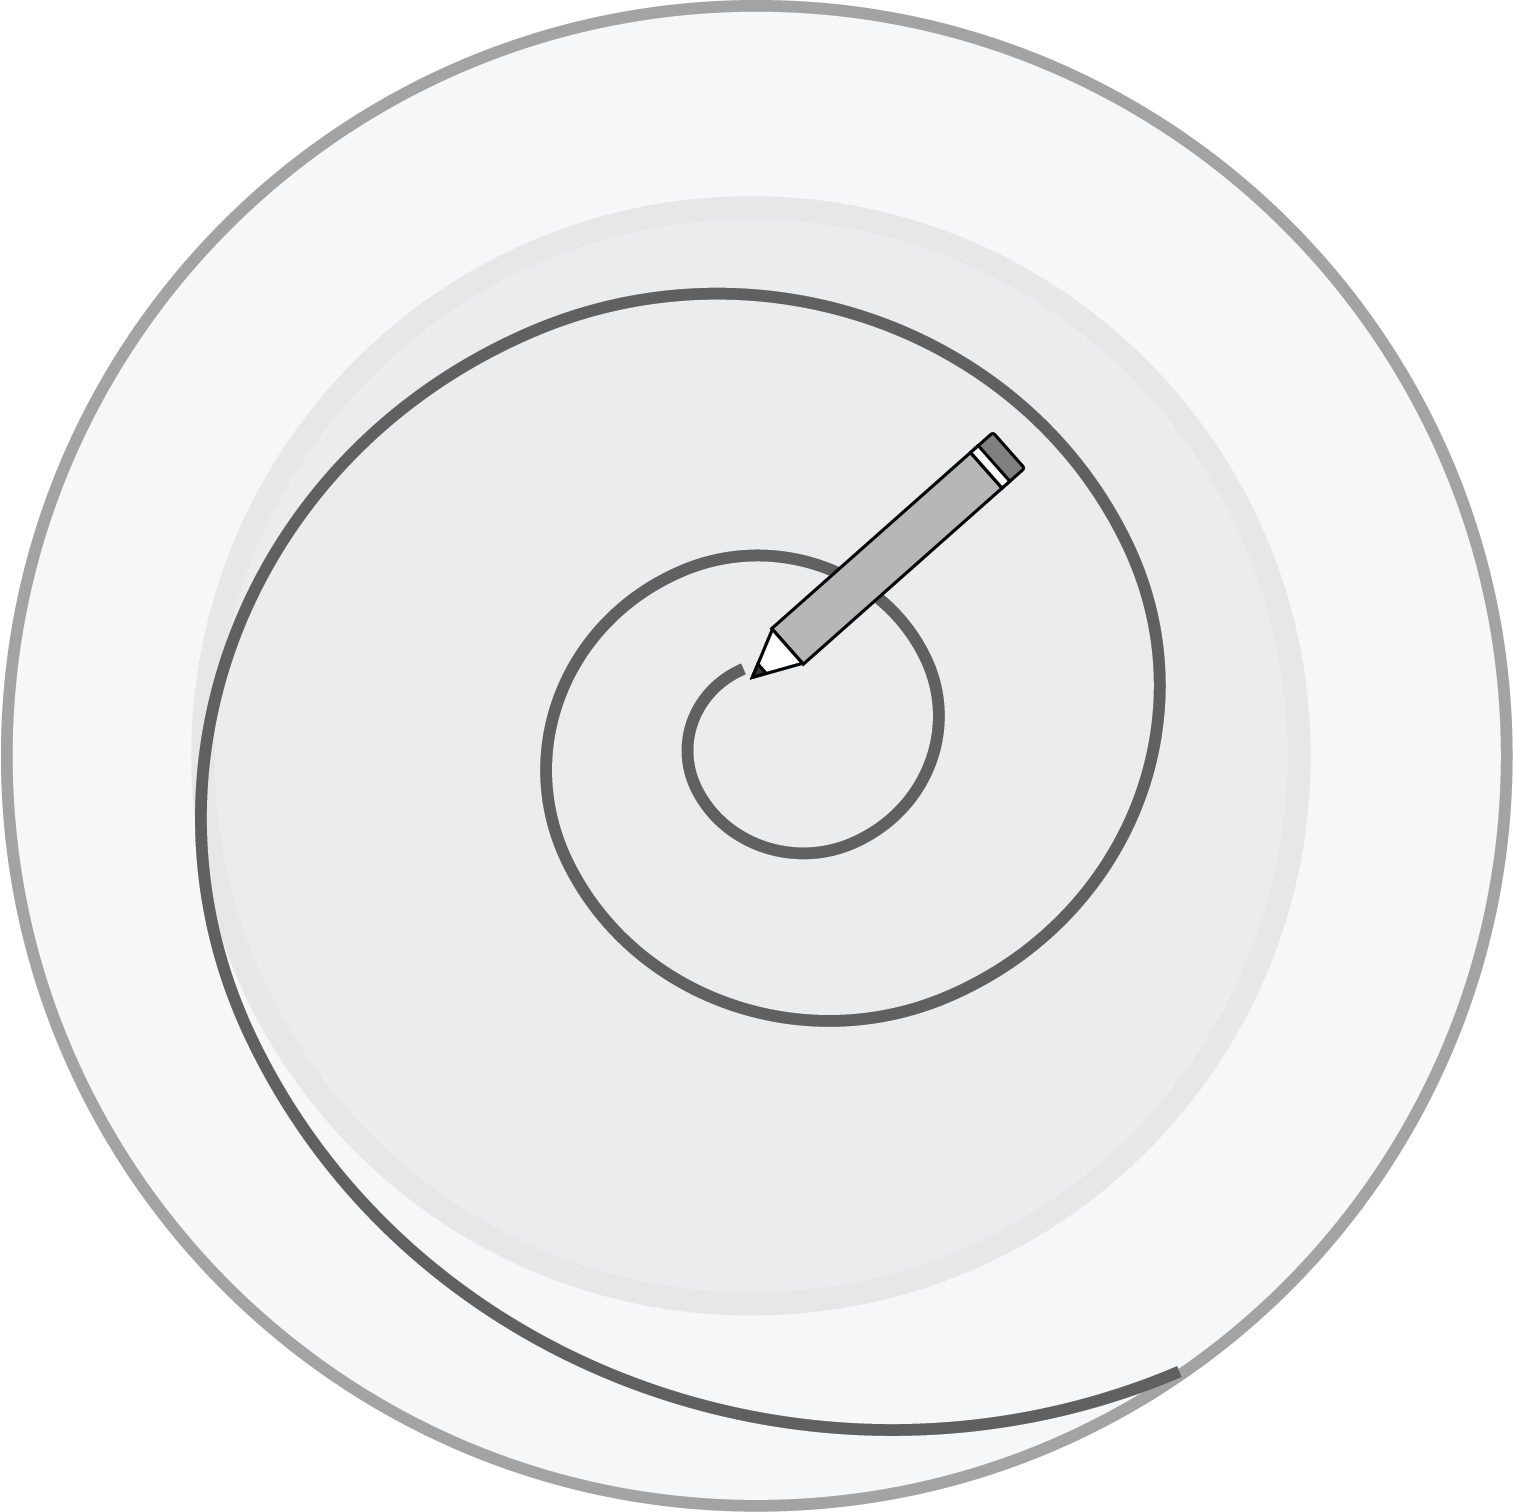 Illustration depicts a pencil drawing a spiral on a paper plate